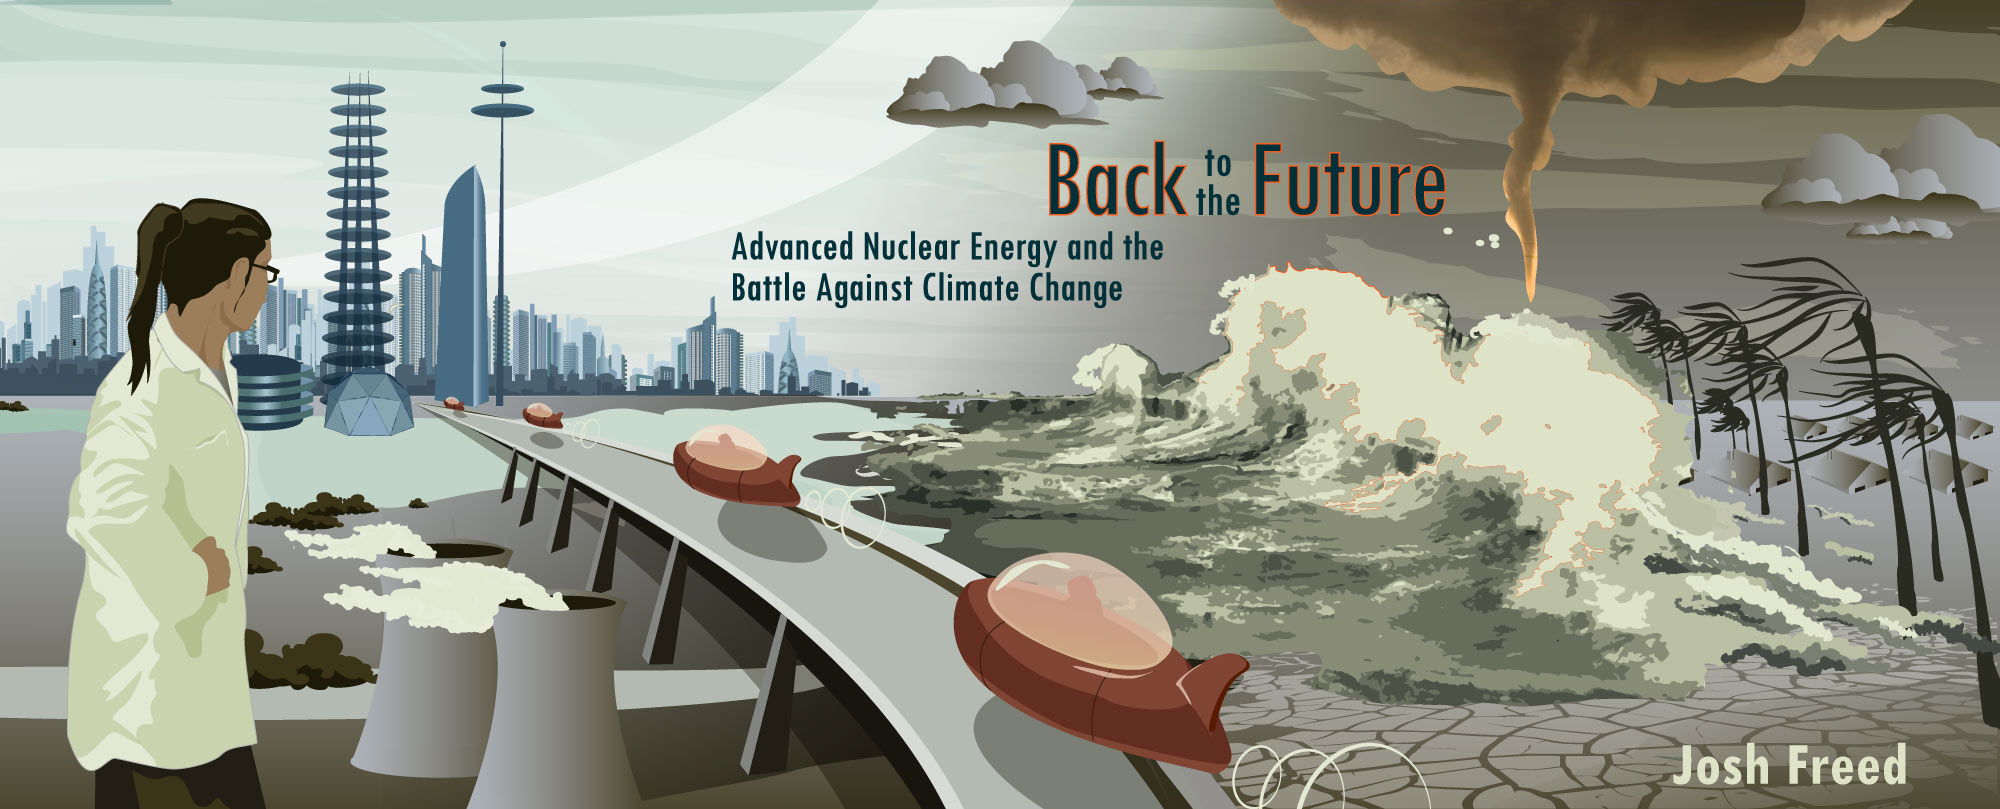 future essays back to the future advanced nuclear energy and the  back to the future advanced nuclear energy and the battle against newspaper reader on train wisdom essay kinglearessayoldageandwisdomarenotsynonymous gcb